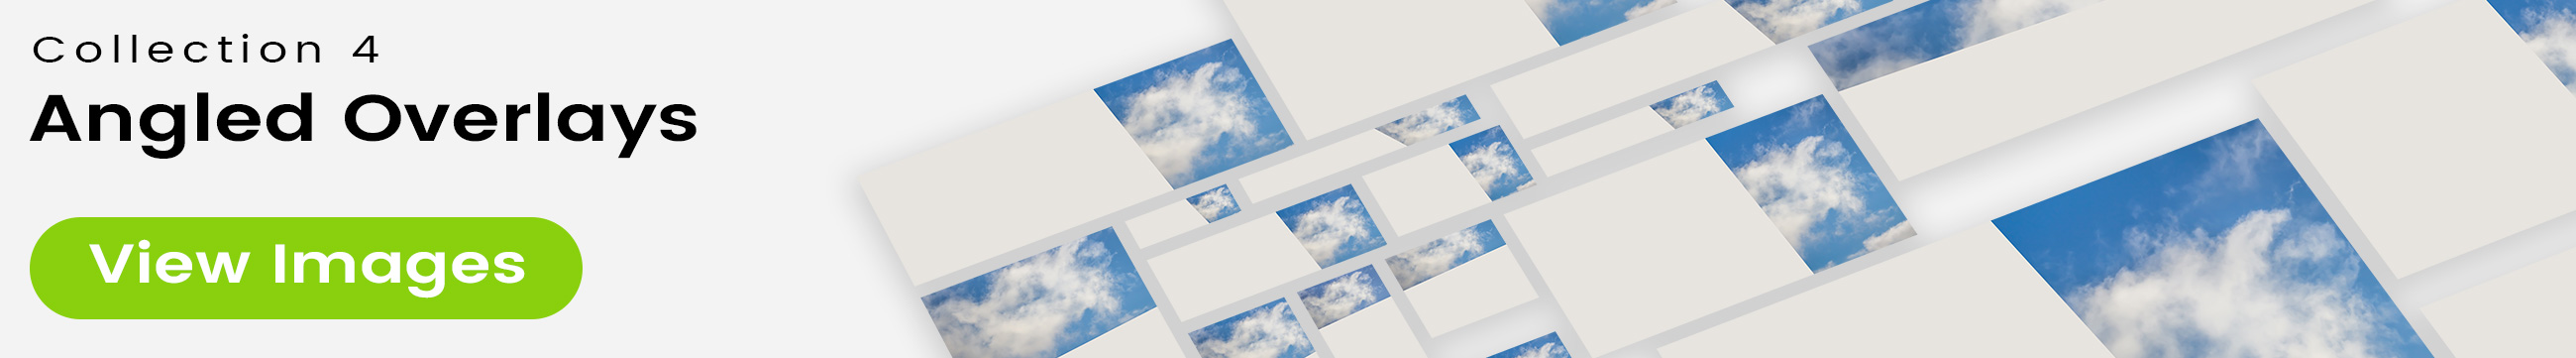 See 25 bonus images included with clouds stock image 9463. Collection 4 of 4 features an angled overlay design customized with a color that complements each photo.